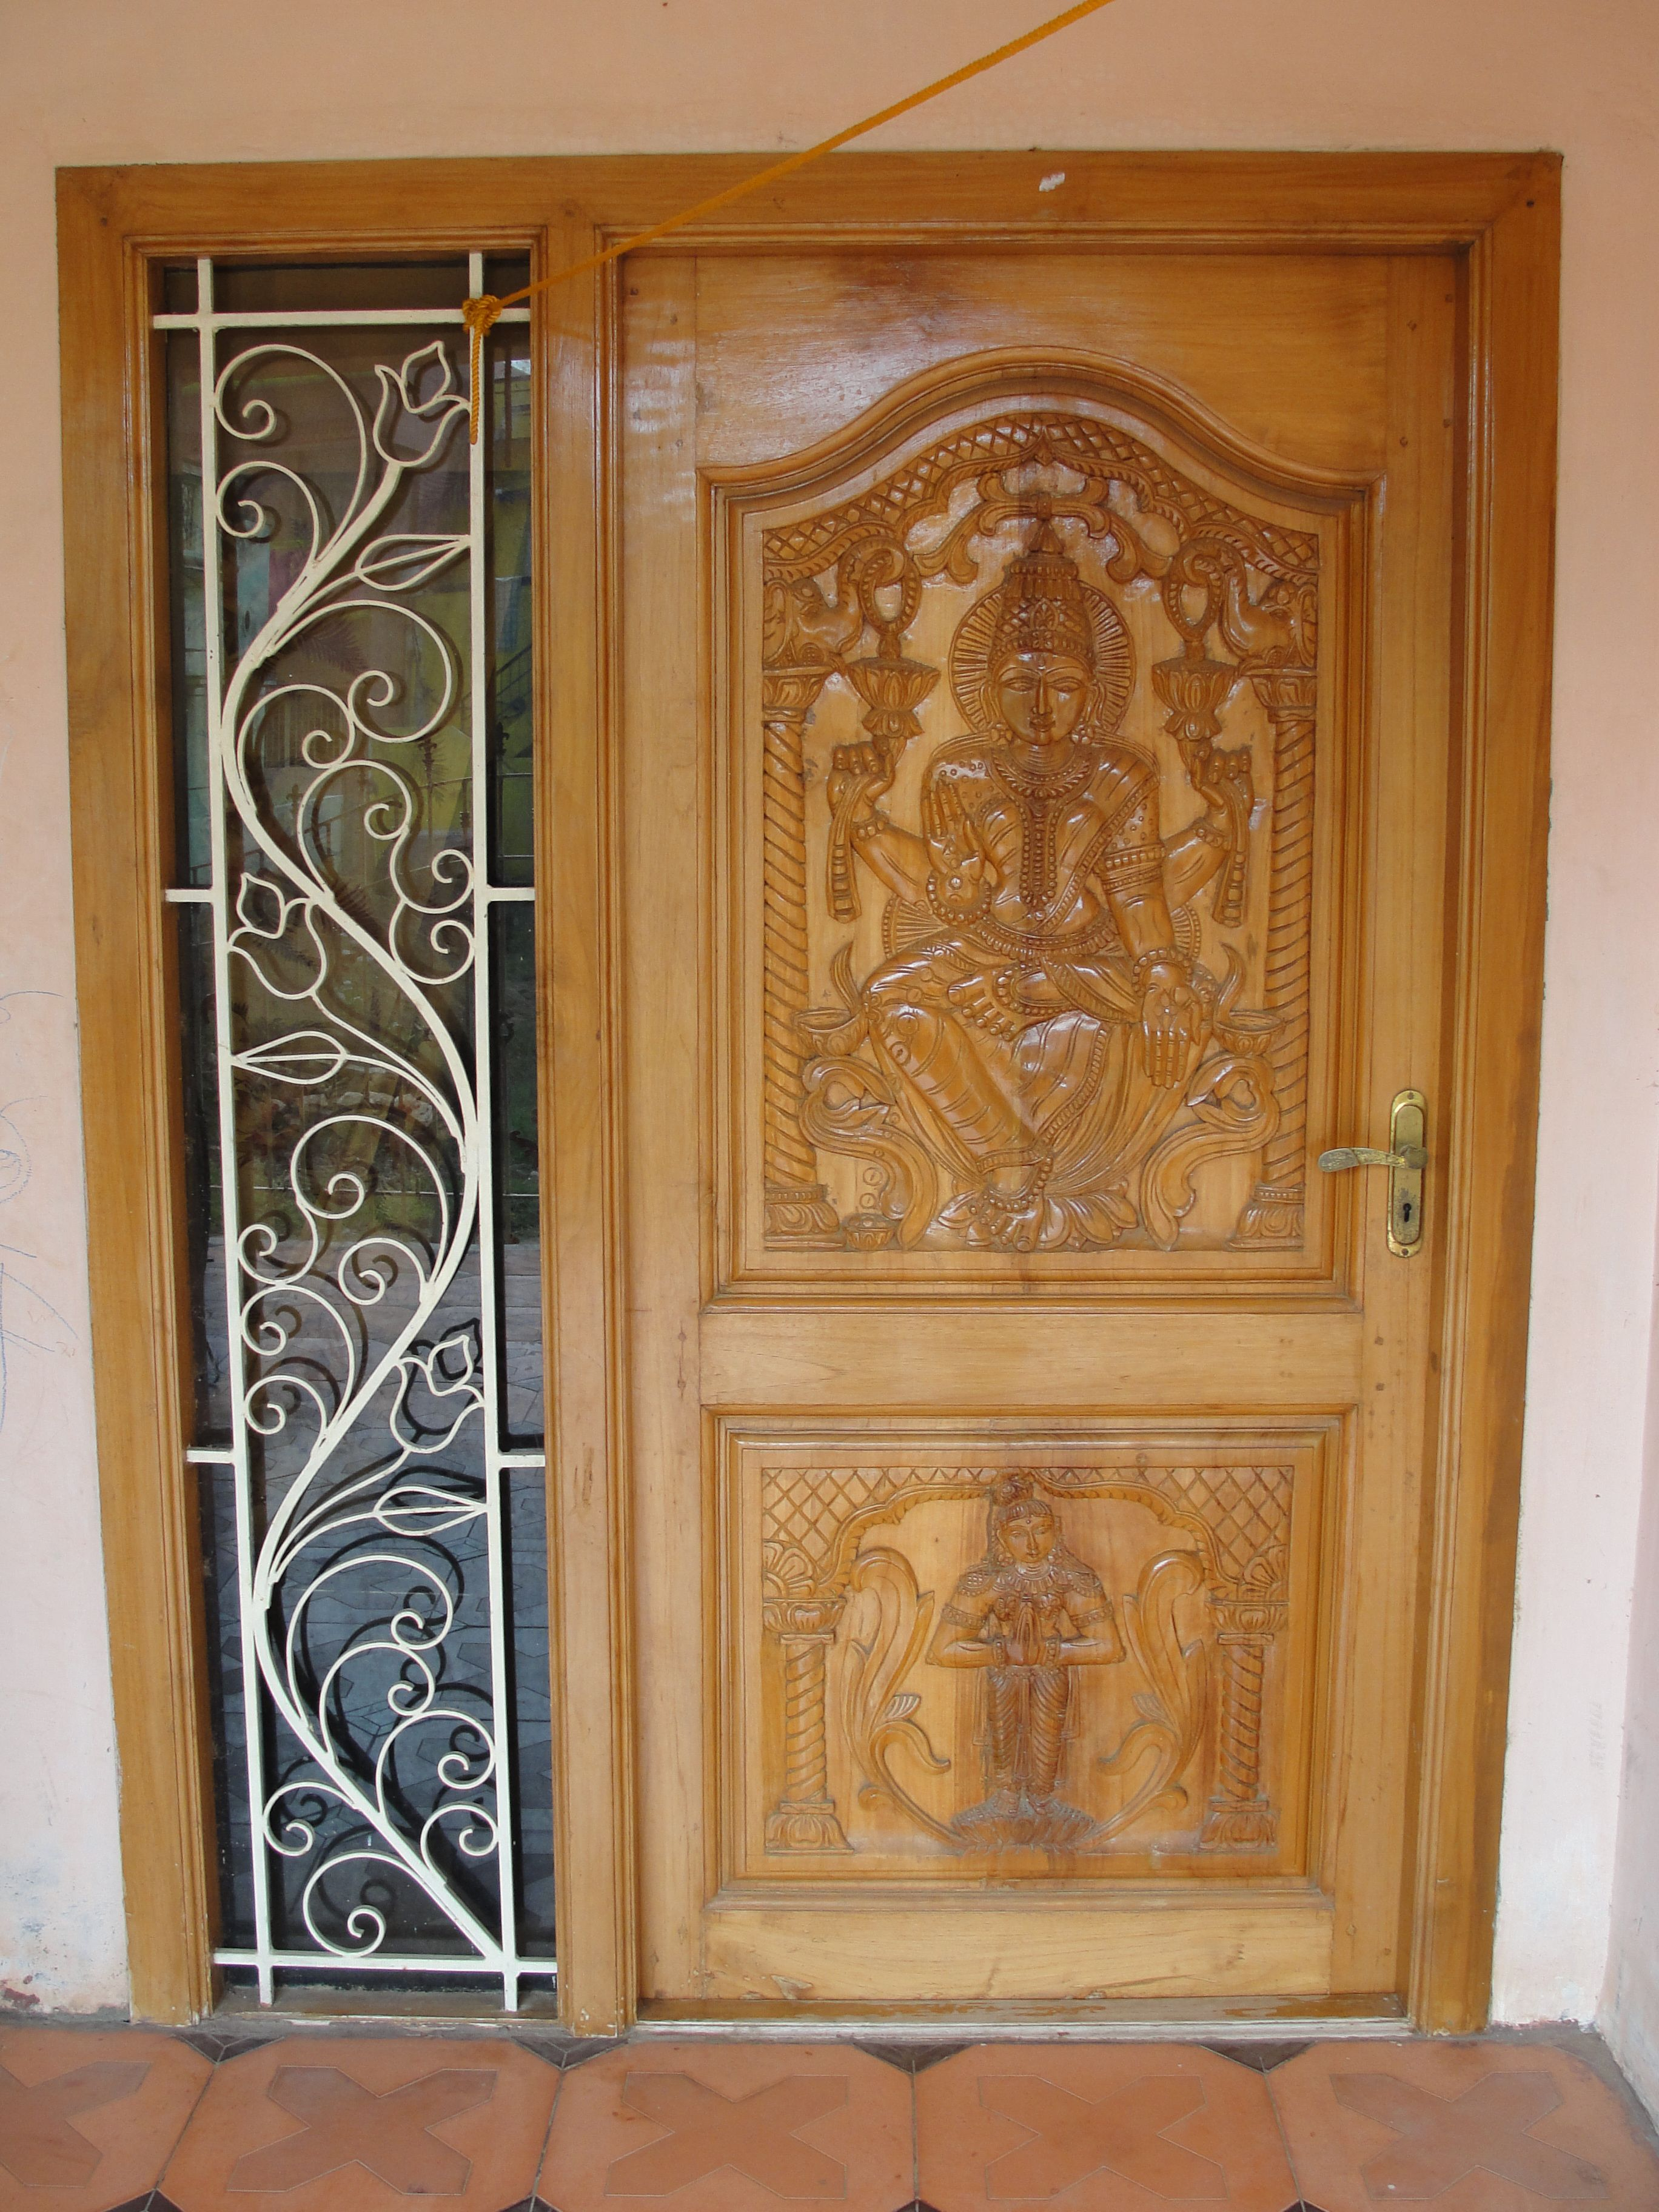 Filean Ornamental Door In Tamil Nadujpg Wikimedia Mons